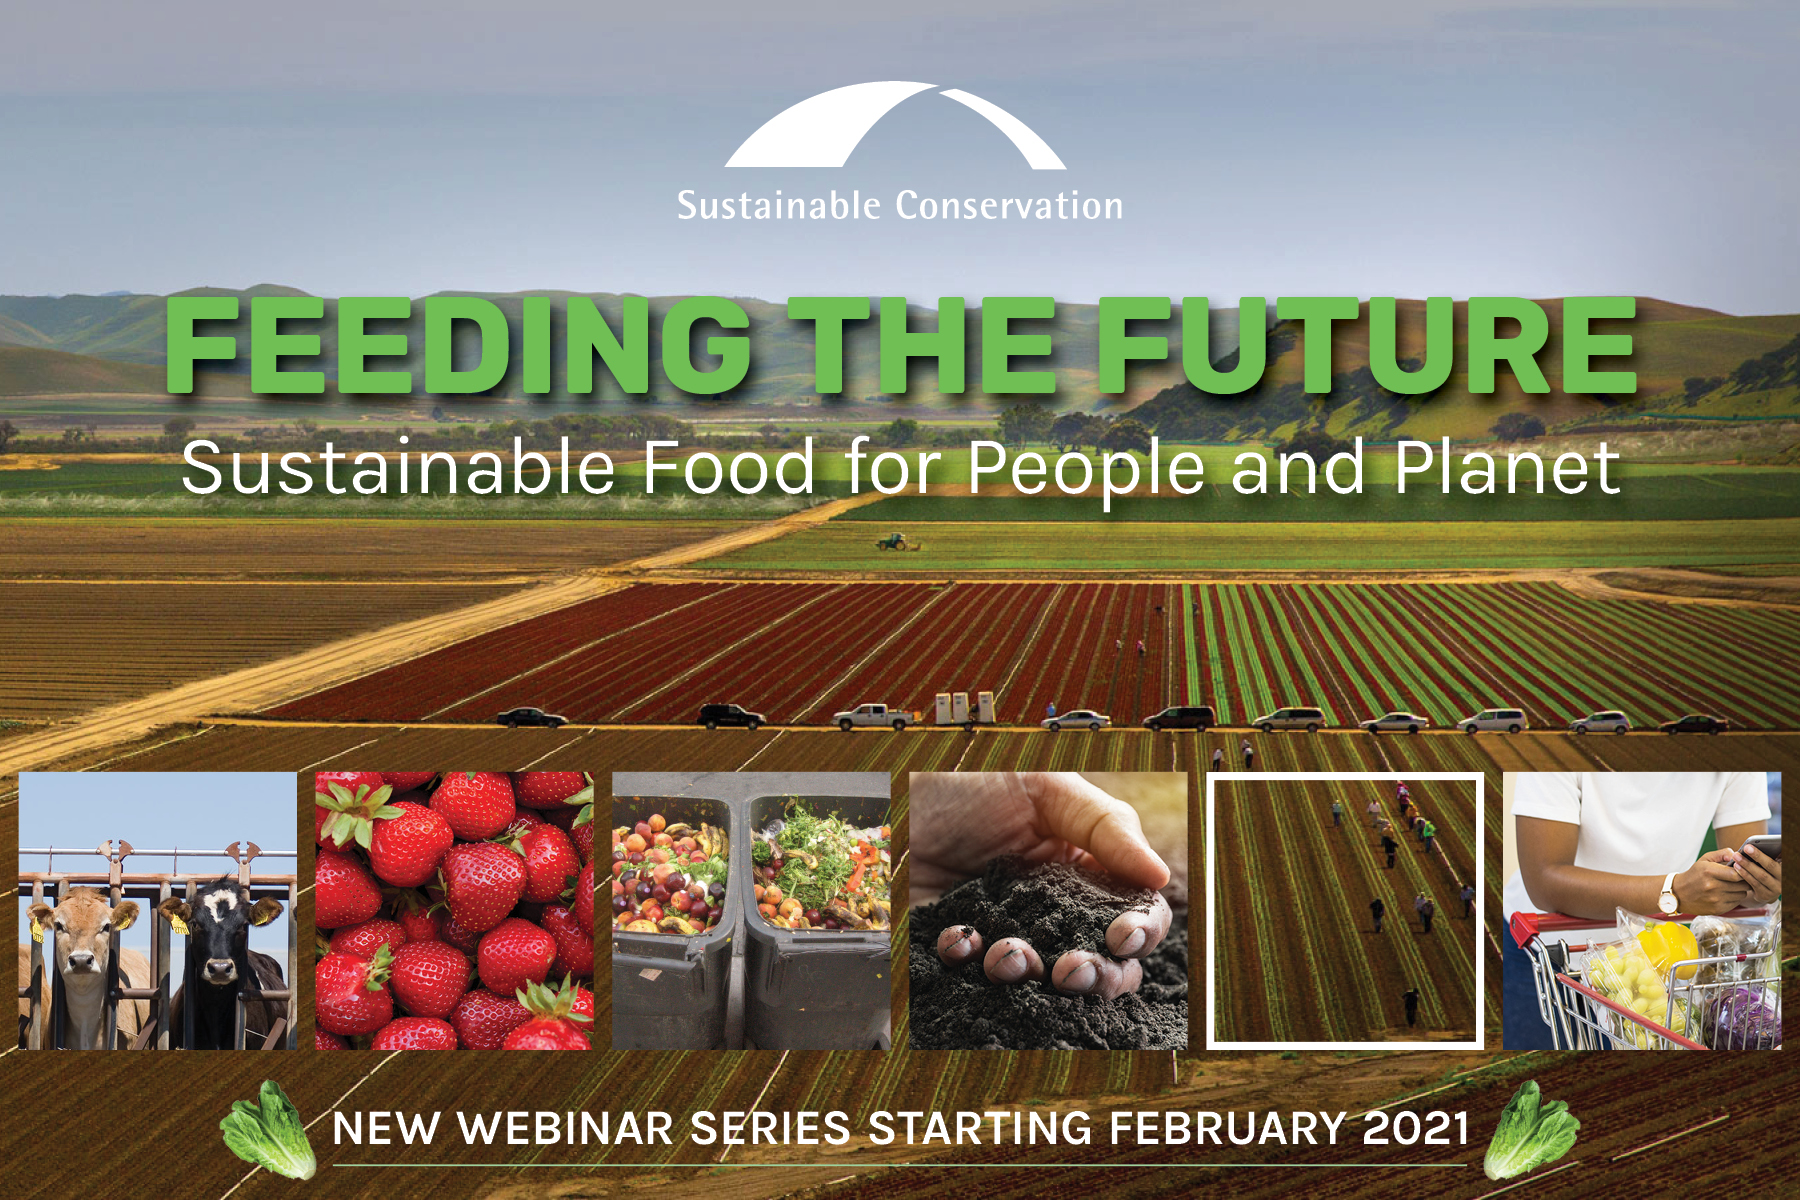 Feeding the Future webinar series